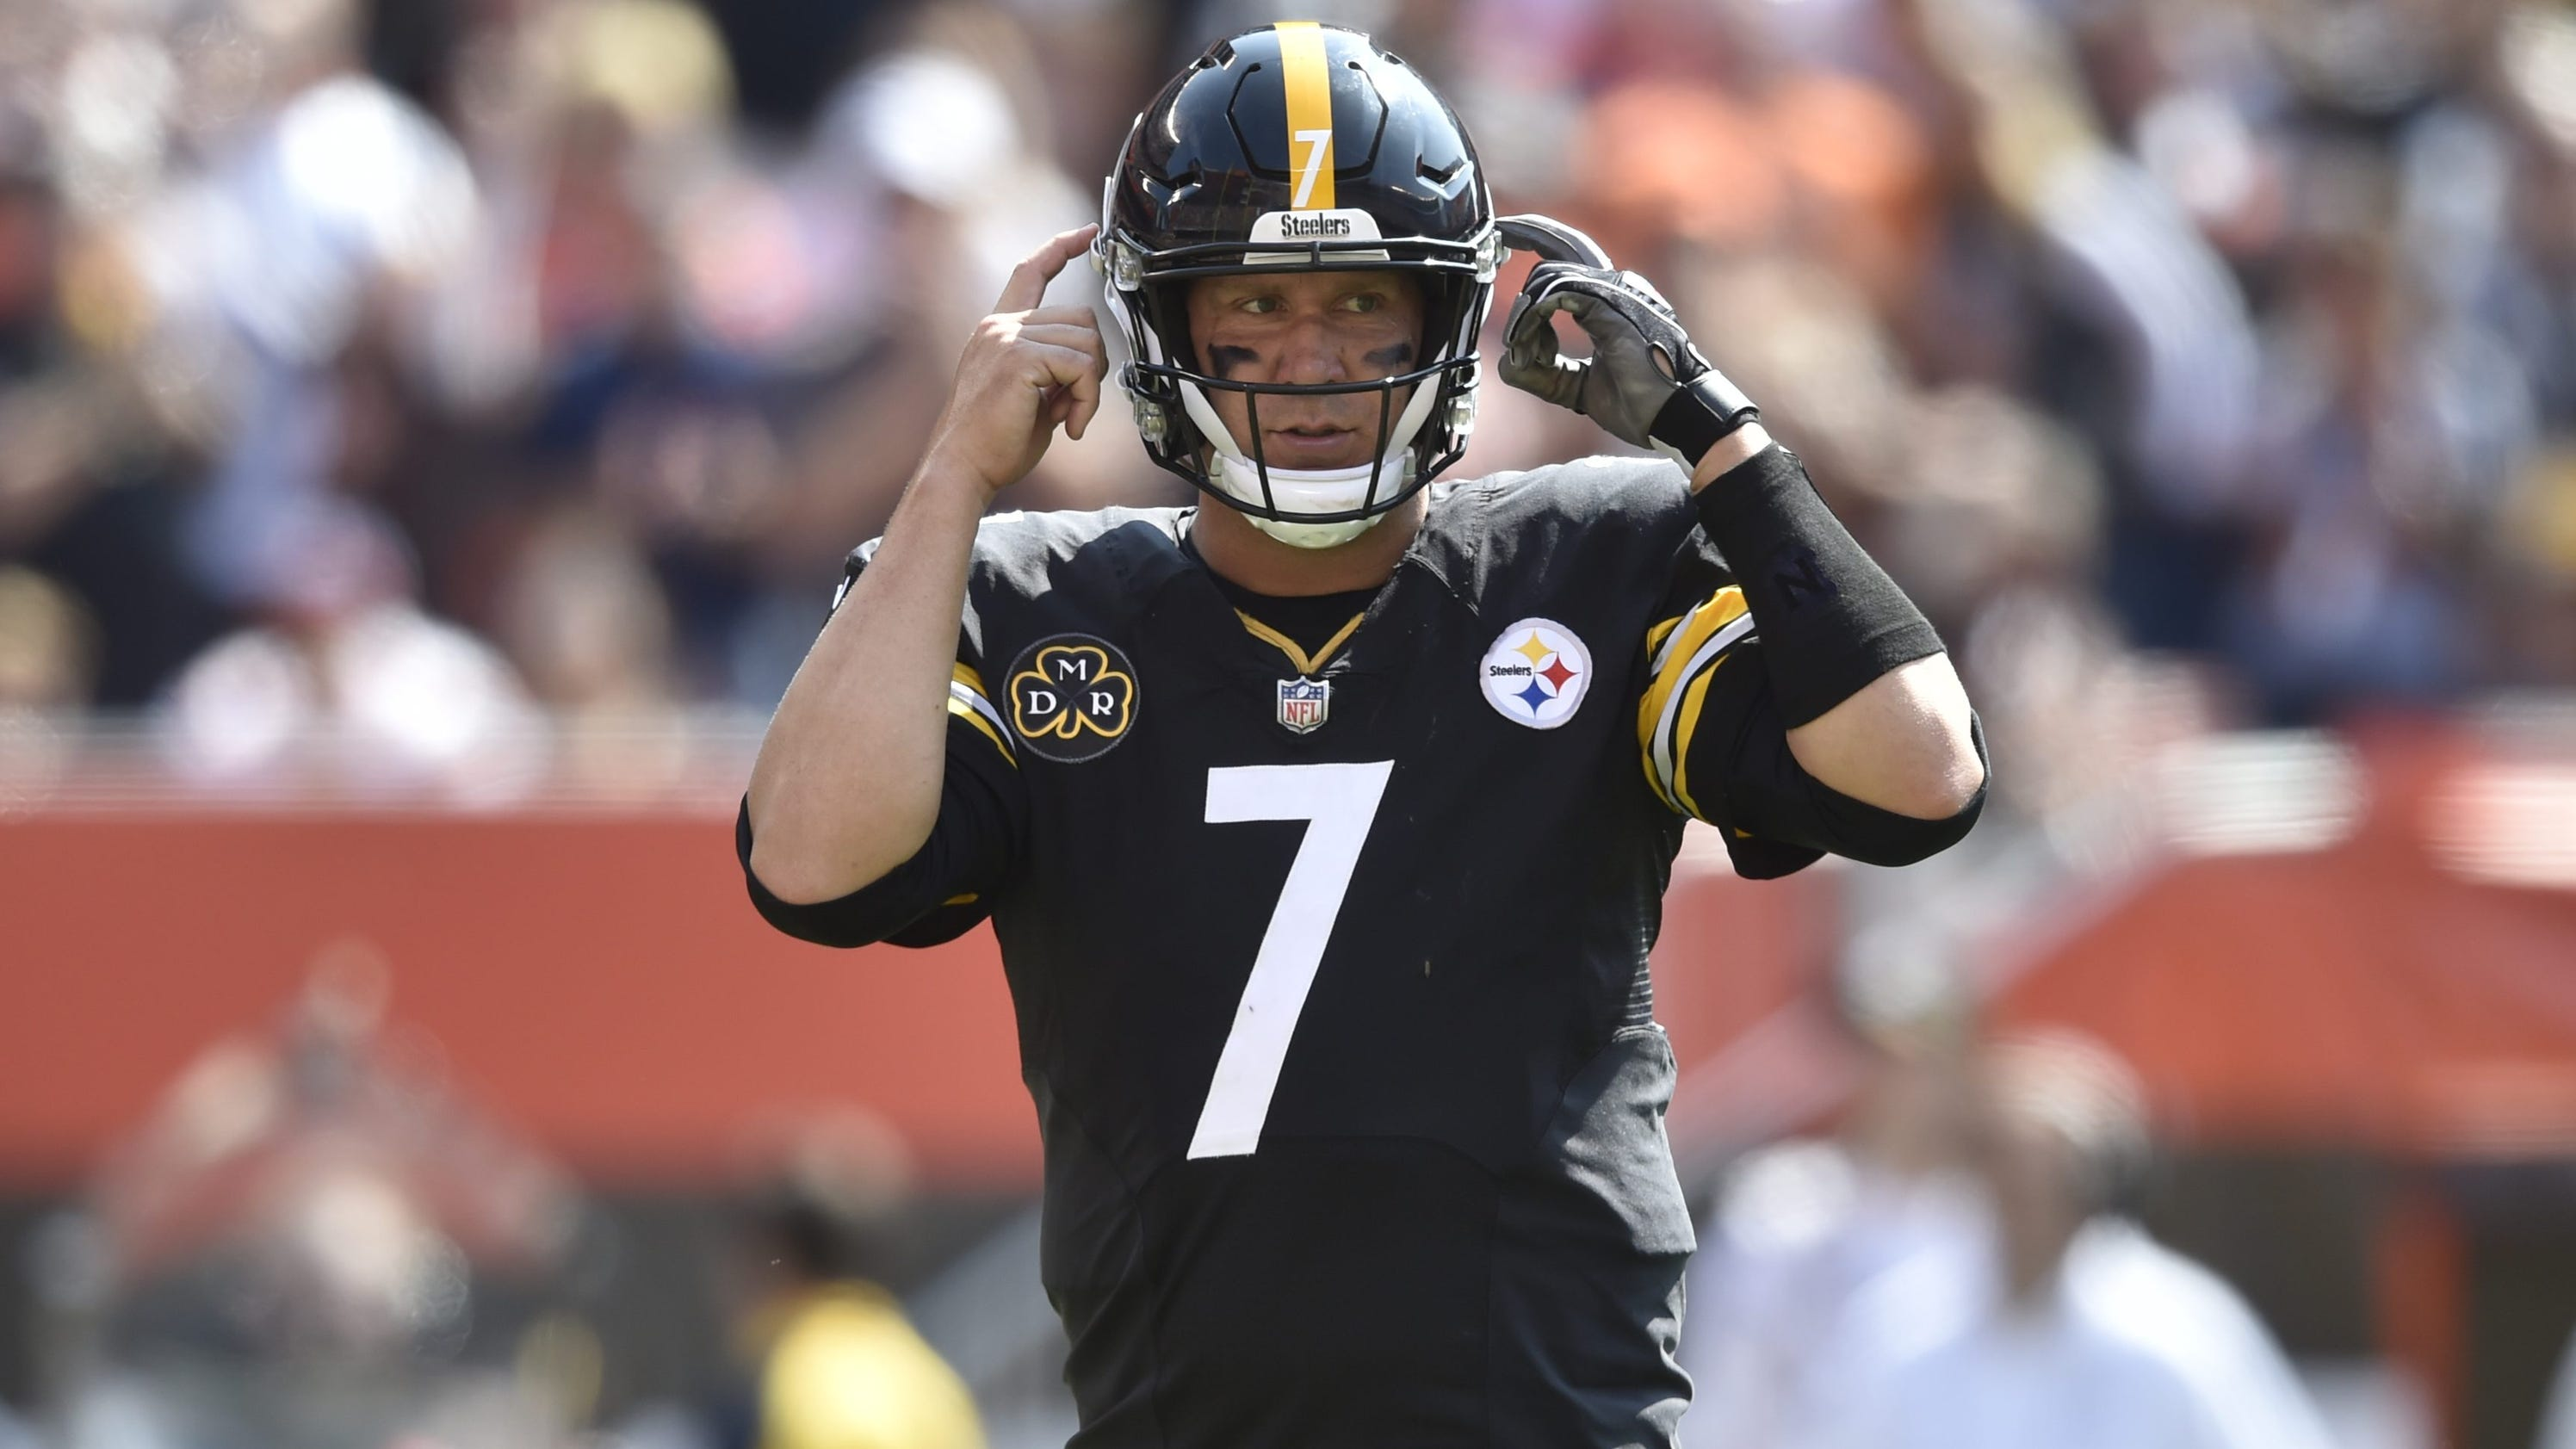 NFL Week 2 picks: Can you trust the Steelers?